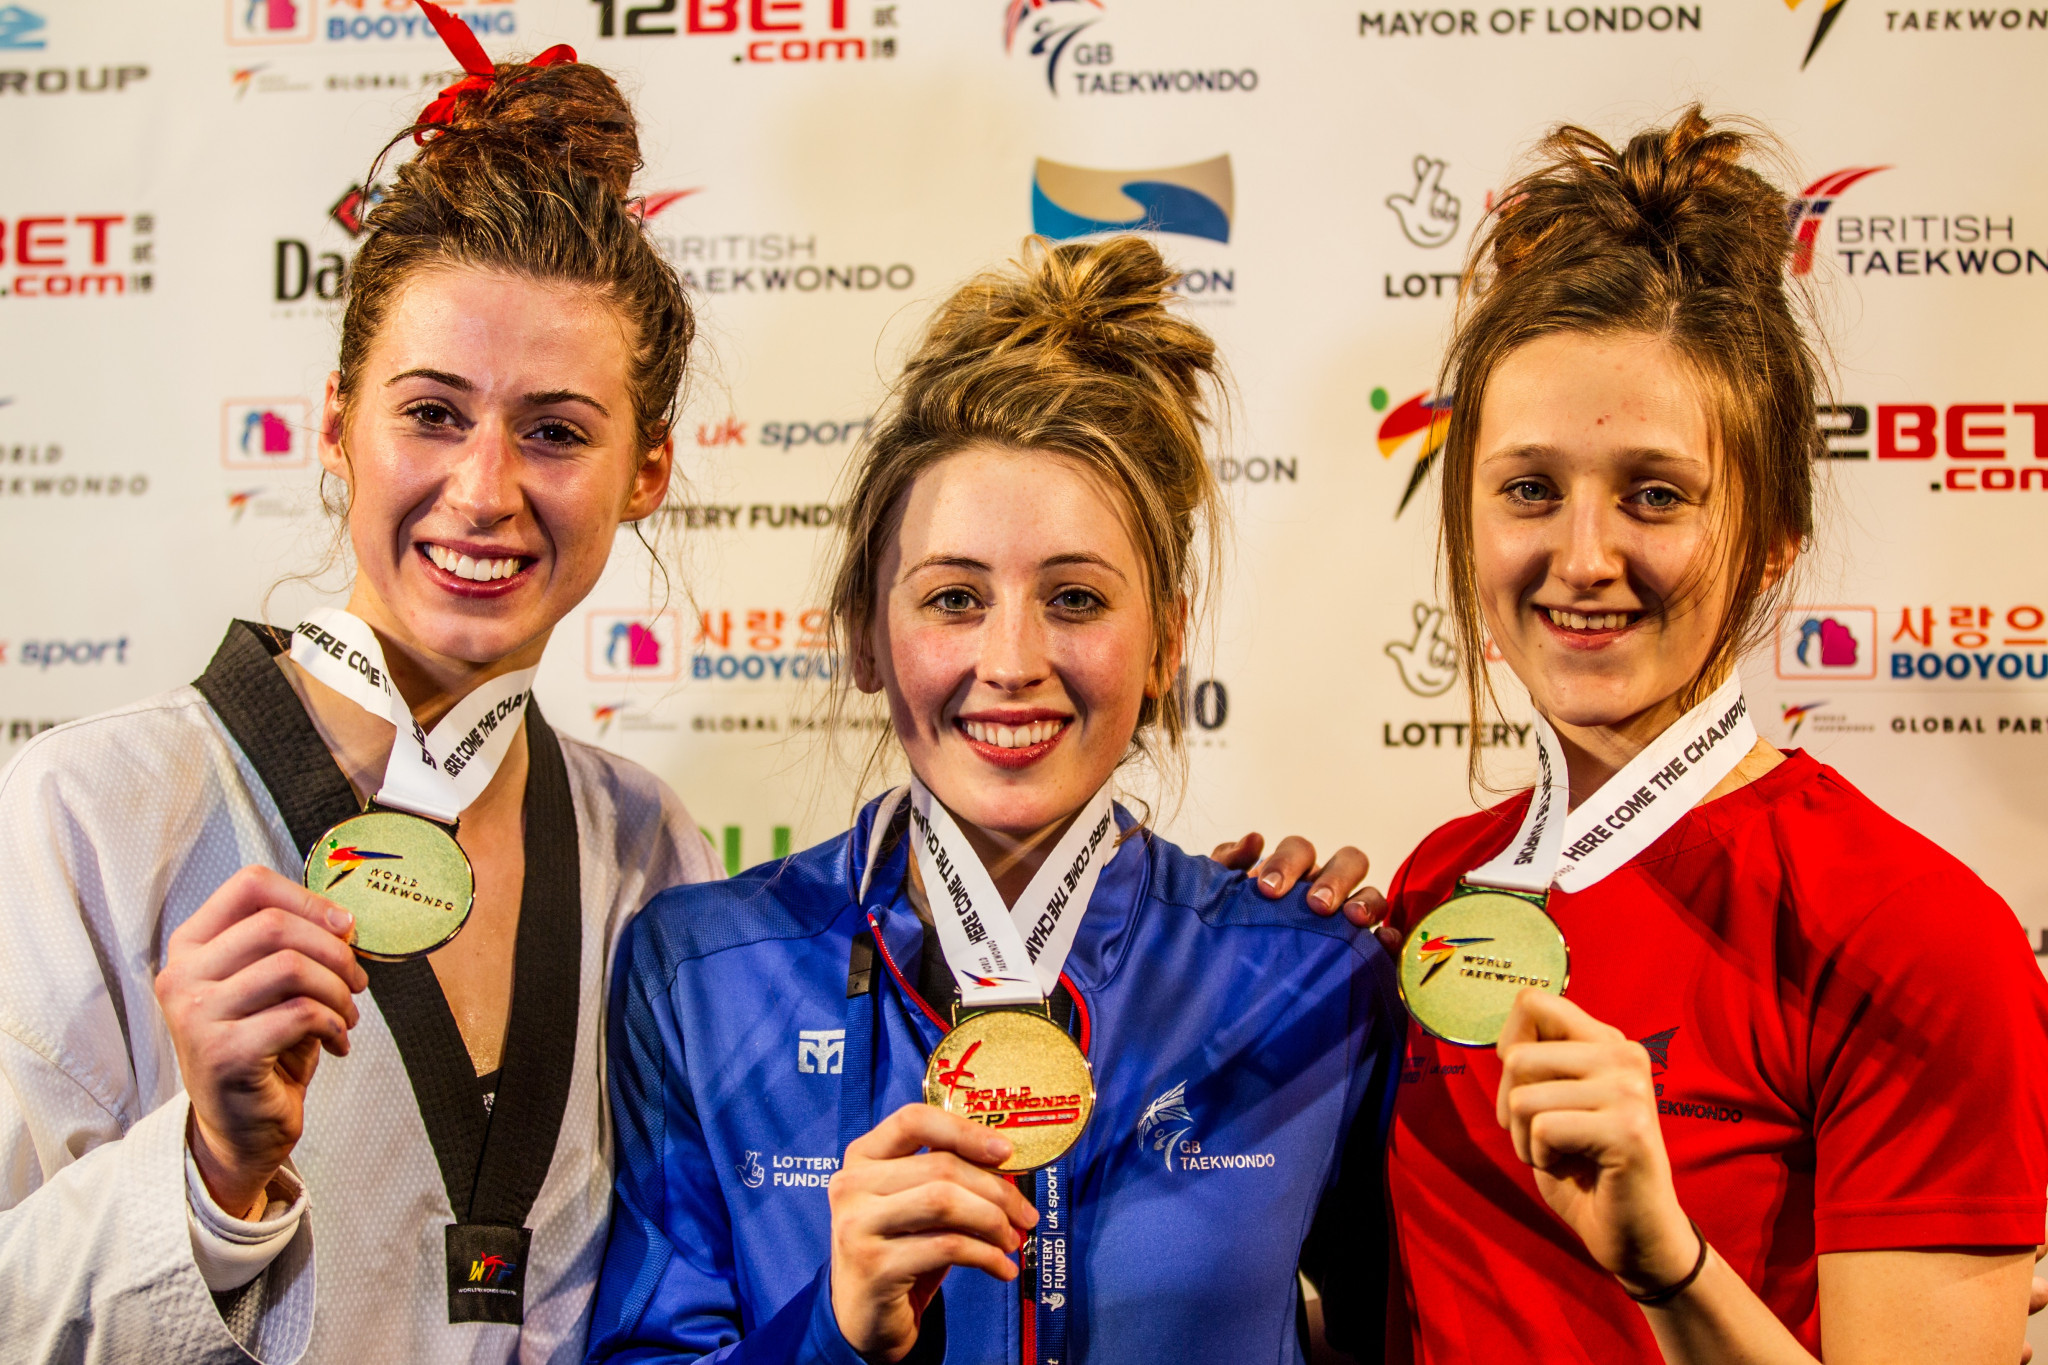 Bianca Walkden, left, and Jade Jones, centre, both won gold medals today at the World Taekwondo Grand Prix series event in London, increasing hosts Great Britain's gold medal tally to three after success for Lauren Williams, right, yesterday ©GB Taekwondo